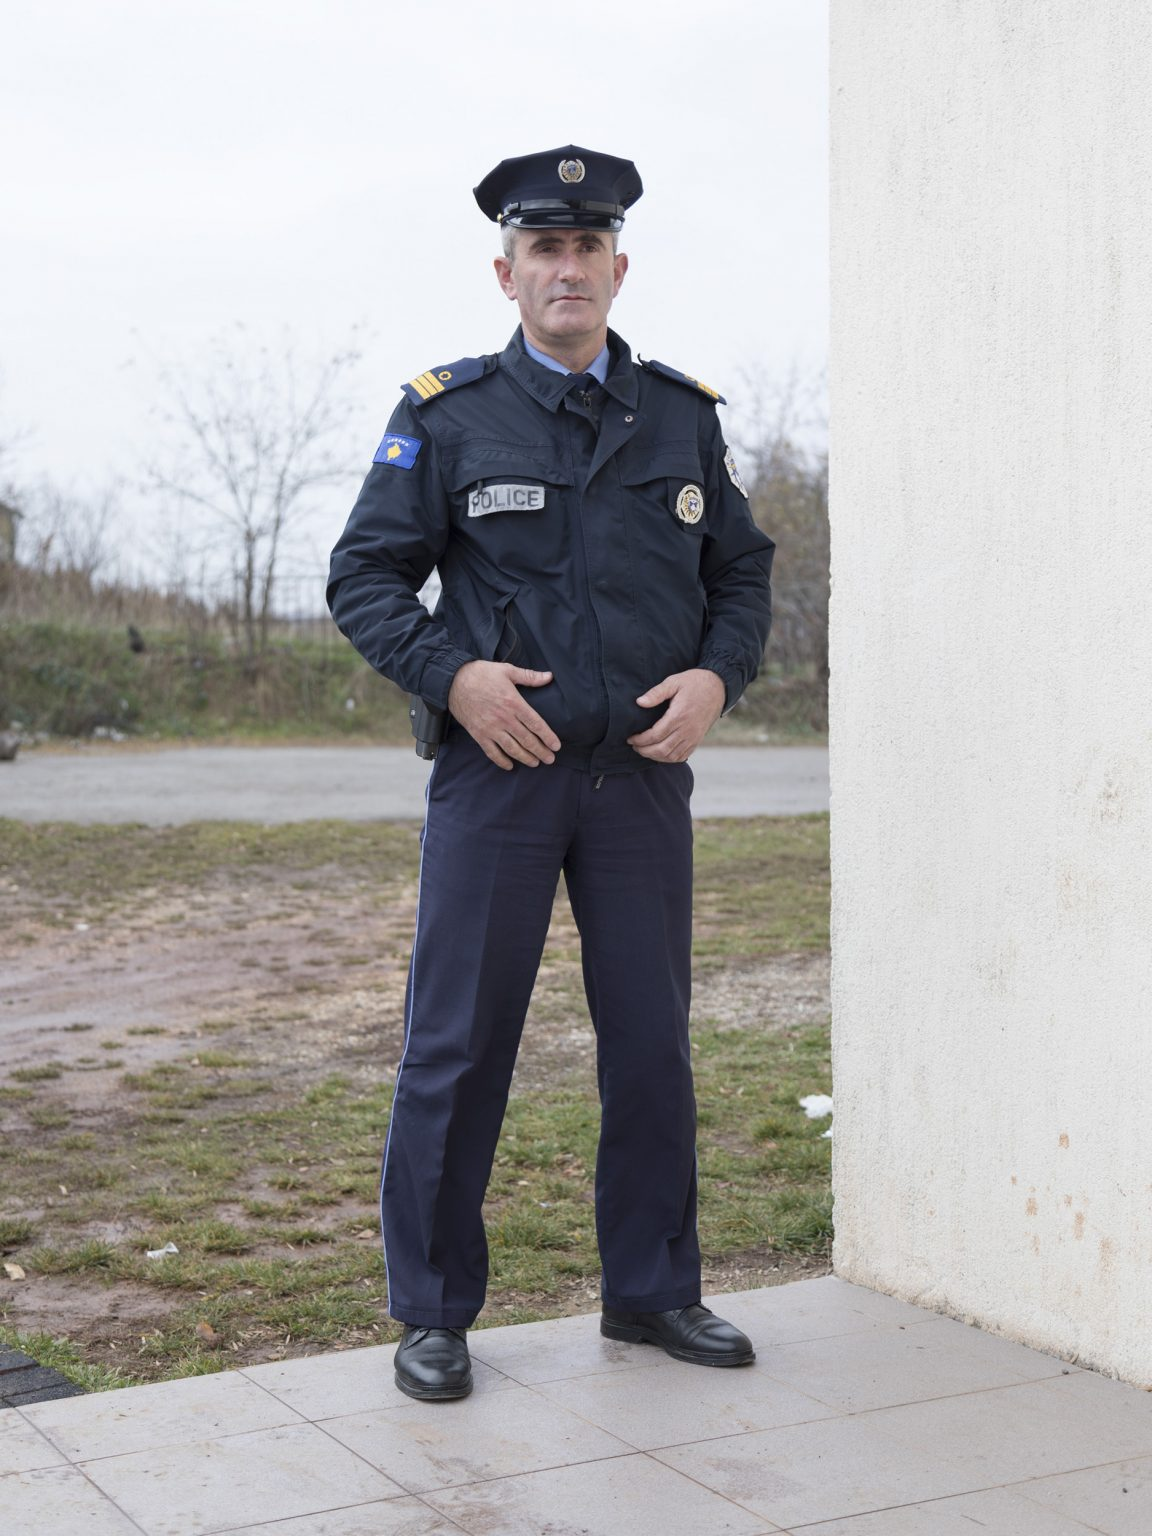 Shukri Xhema, police officer, guards the village school of Palaj/Vodica during the voting process for the Obiliq/Obilić mayor.